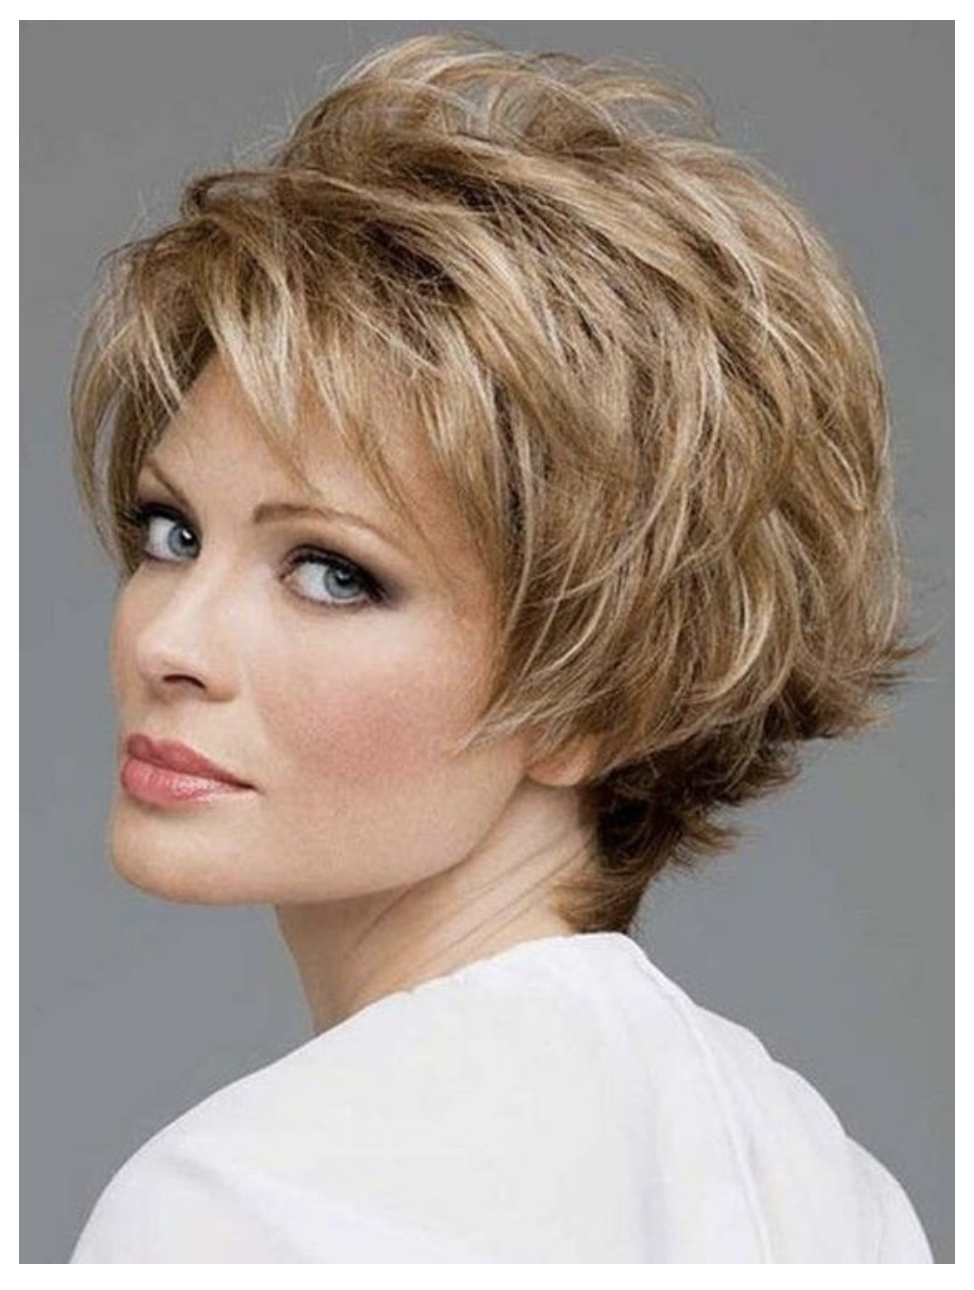 40 Hot Hairstyle for Older Women Over 50 - LatestHairstylePedia.com